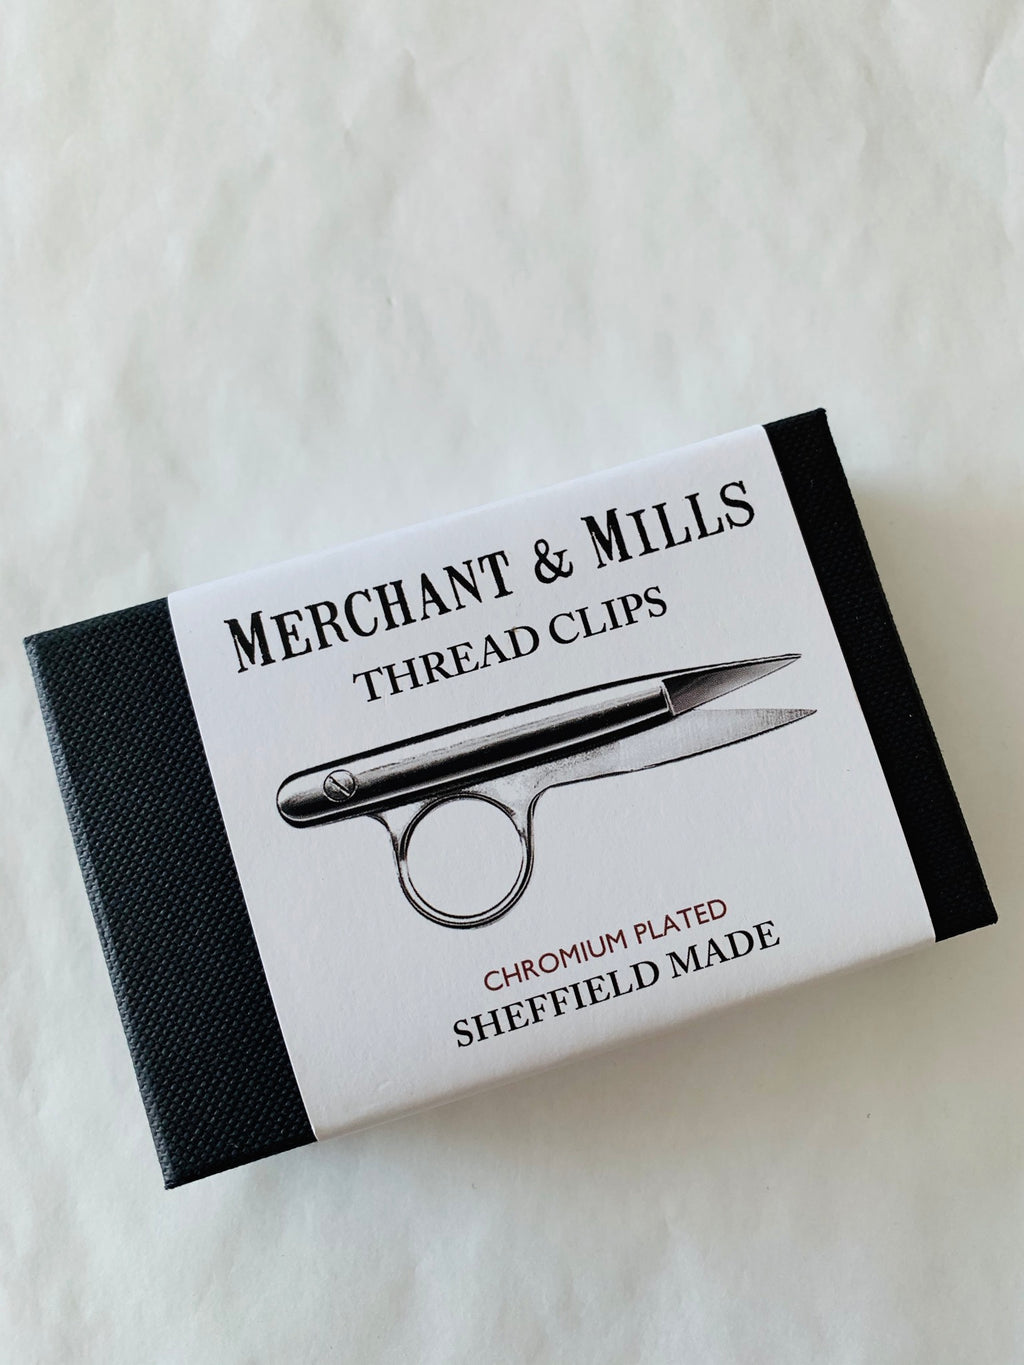 Merchant & Mills Thread Clips